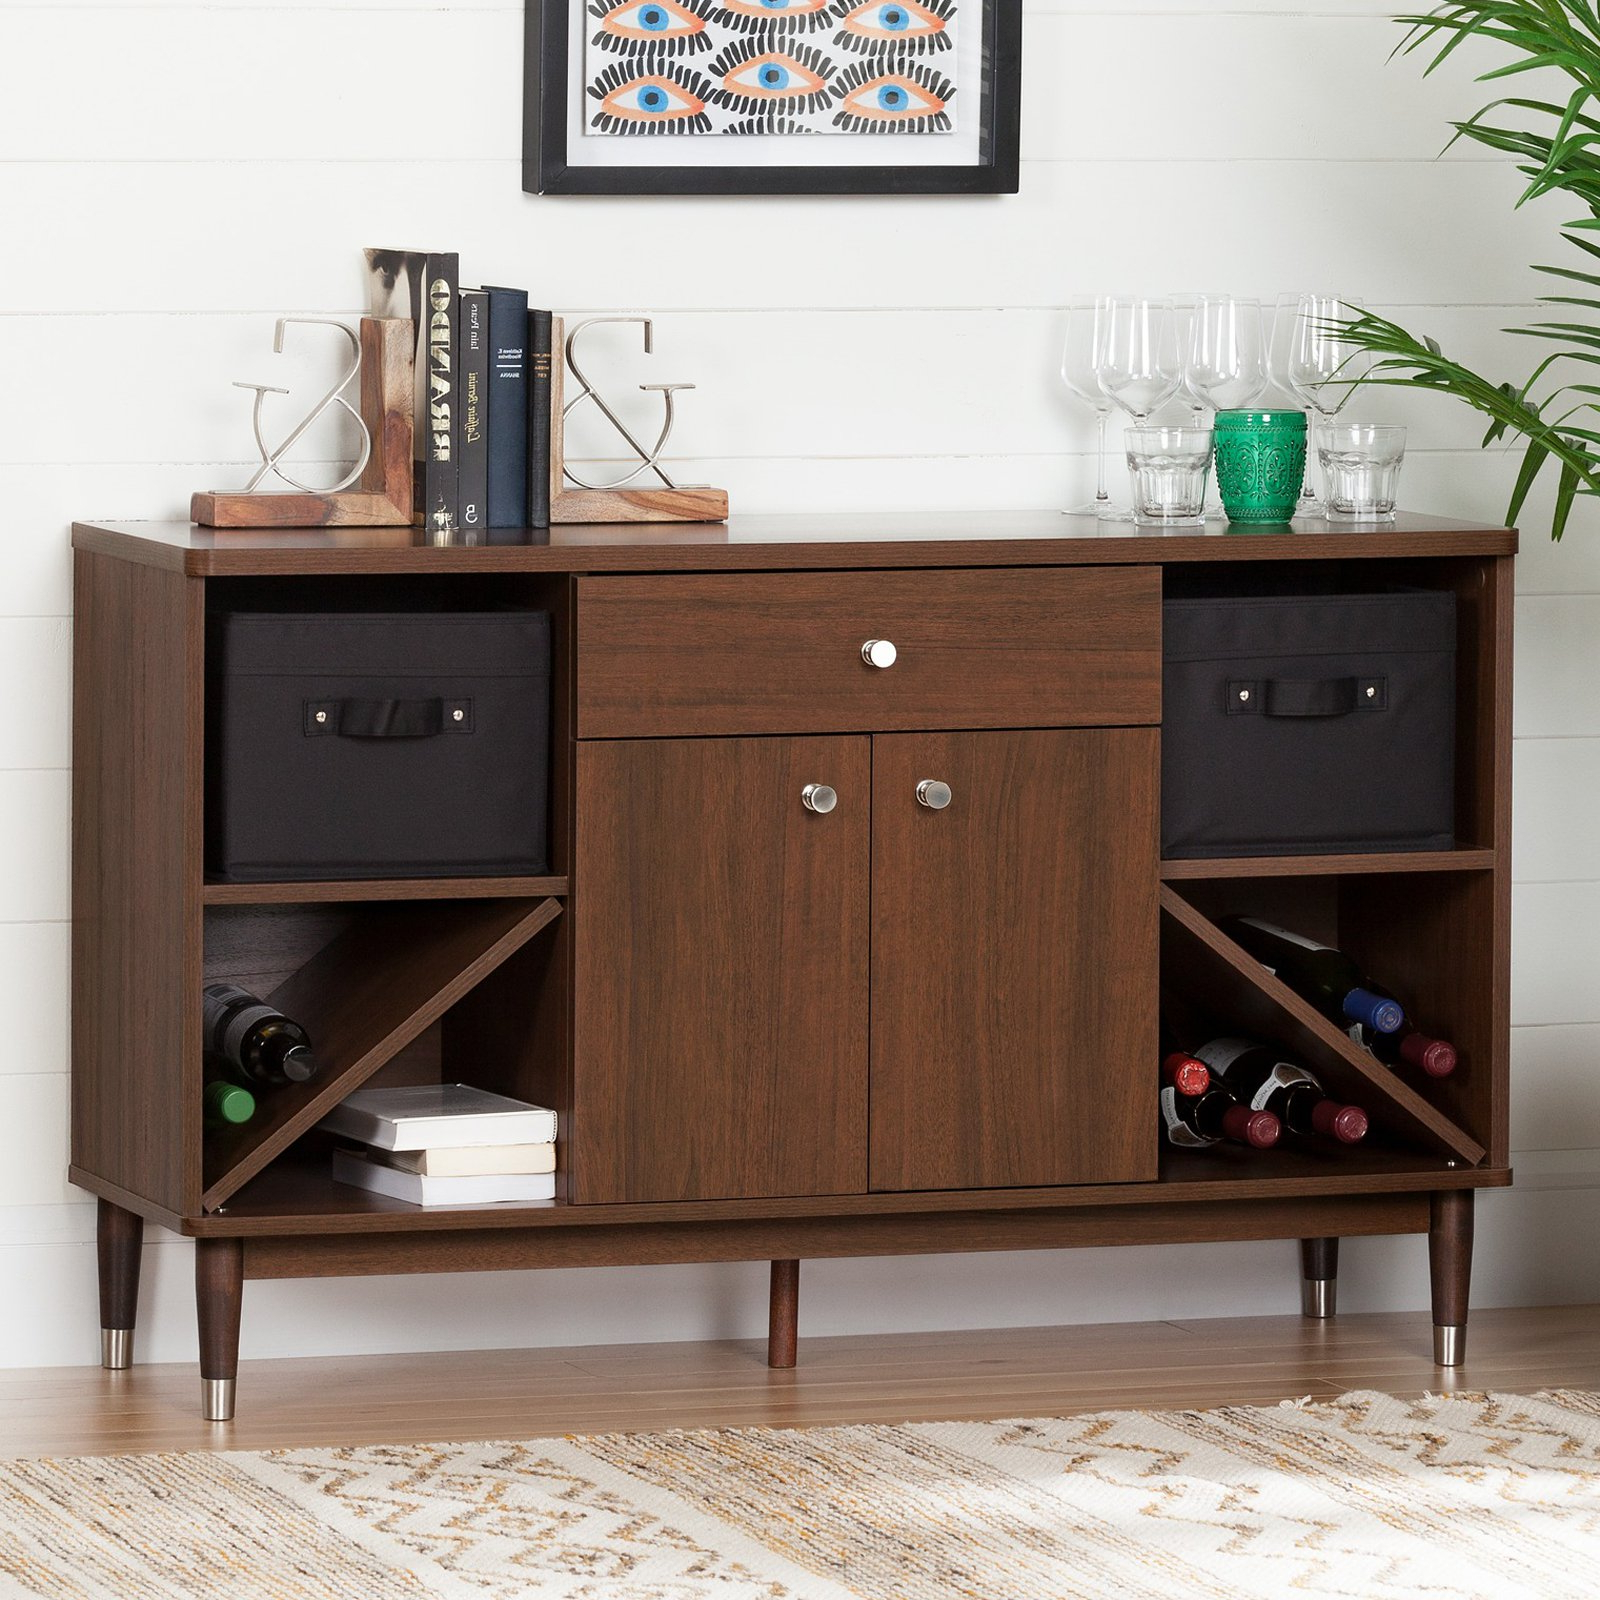 South Shore Olly Mid Century Modern Sideboard Storage Cabinet, Brown Walnut Within Mid Century Brown And Grey Sideboards (View 18 of 20)